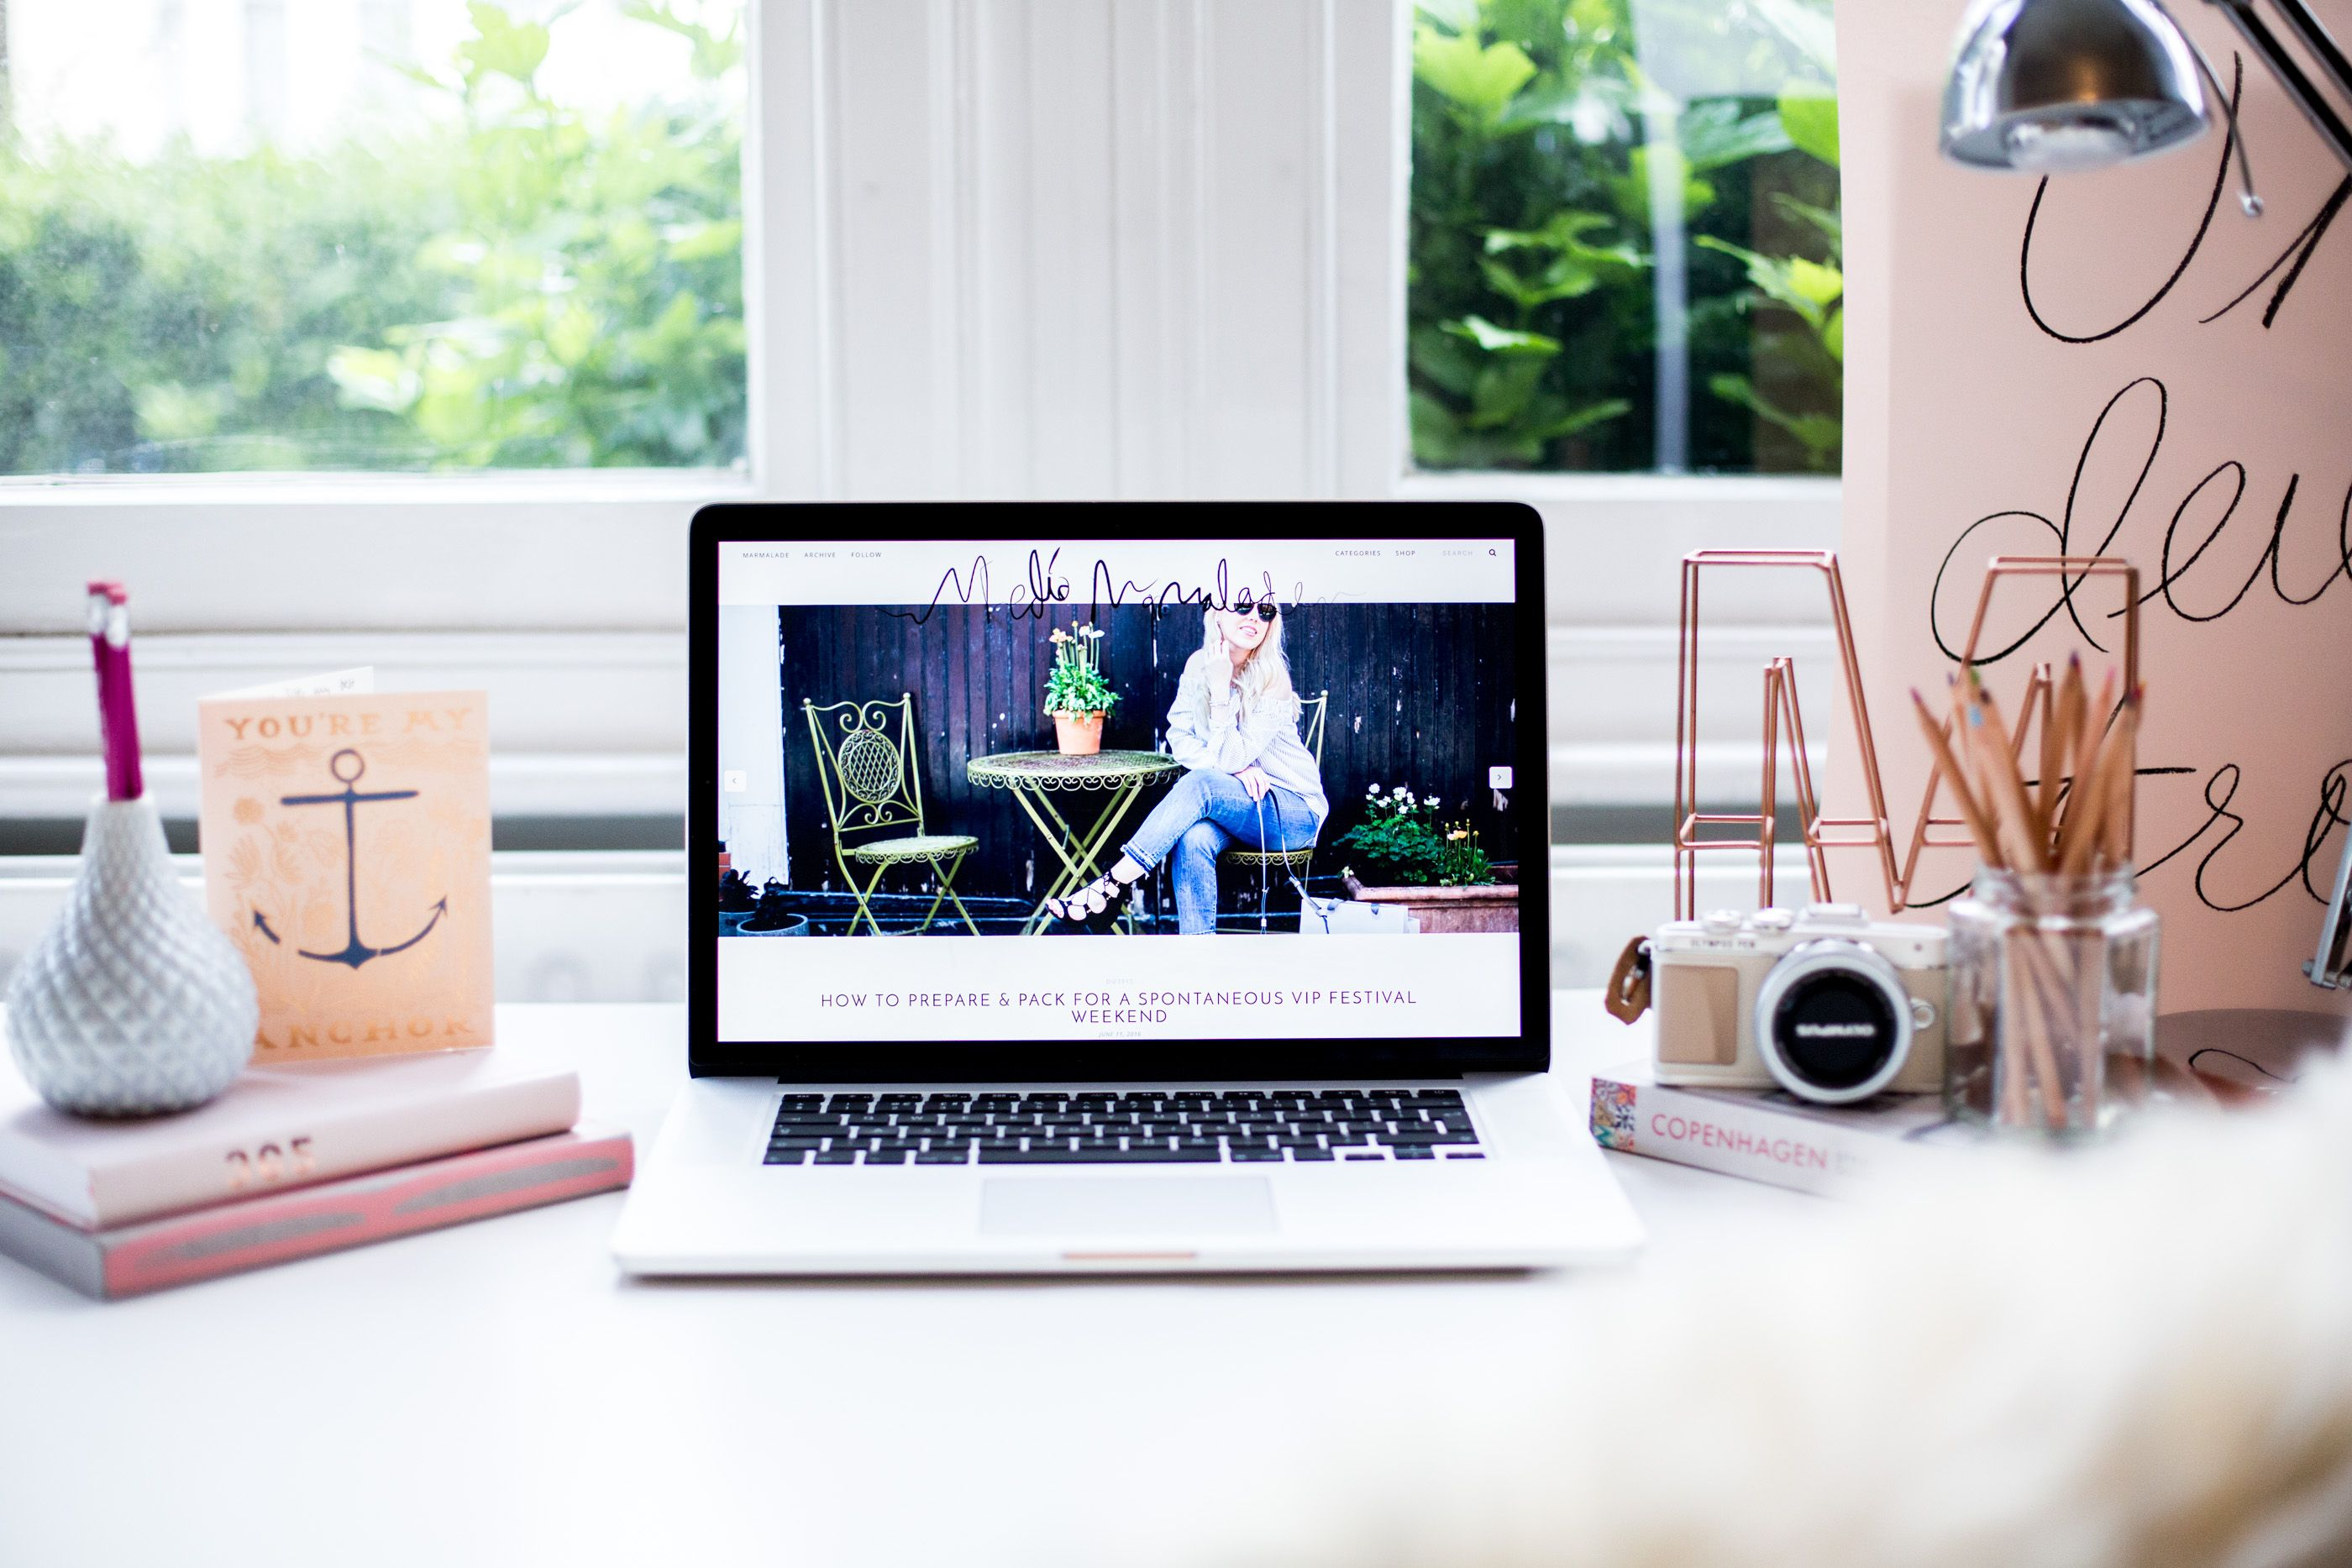 THE 80:20 BLOGGING RULE: WHAT IT IS & HOW IT CAN HELP GROW YOUR BLOG - Mediamarmalade